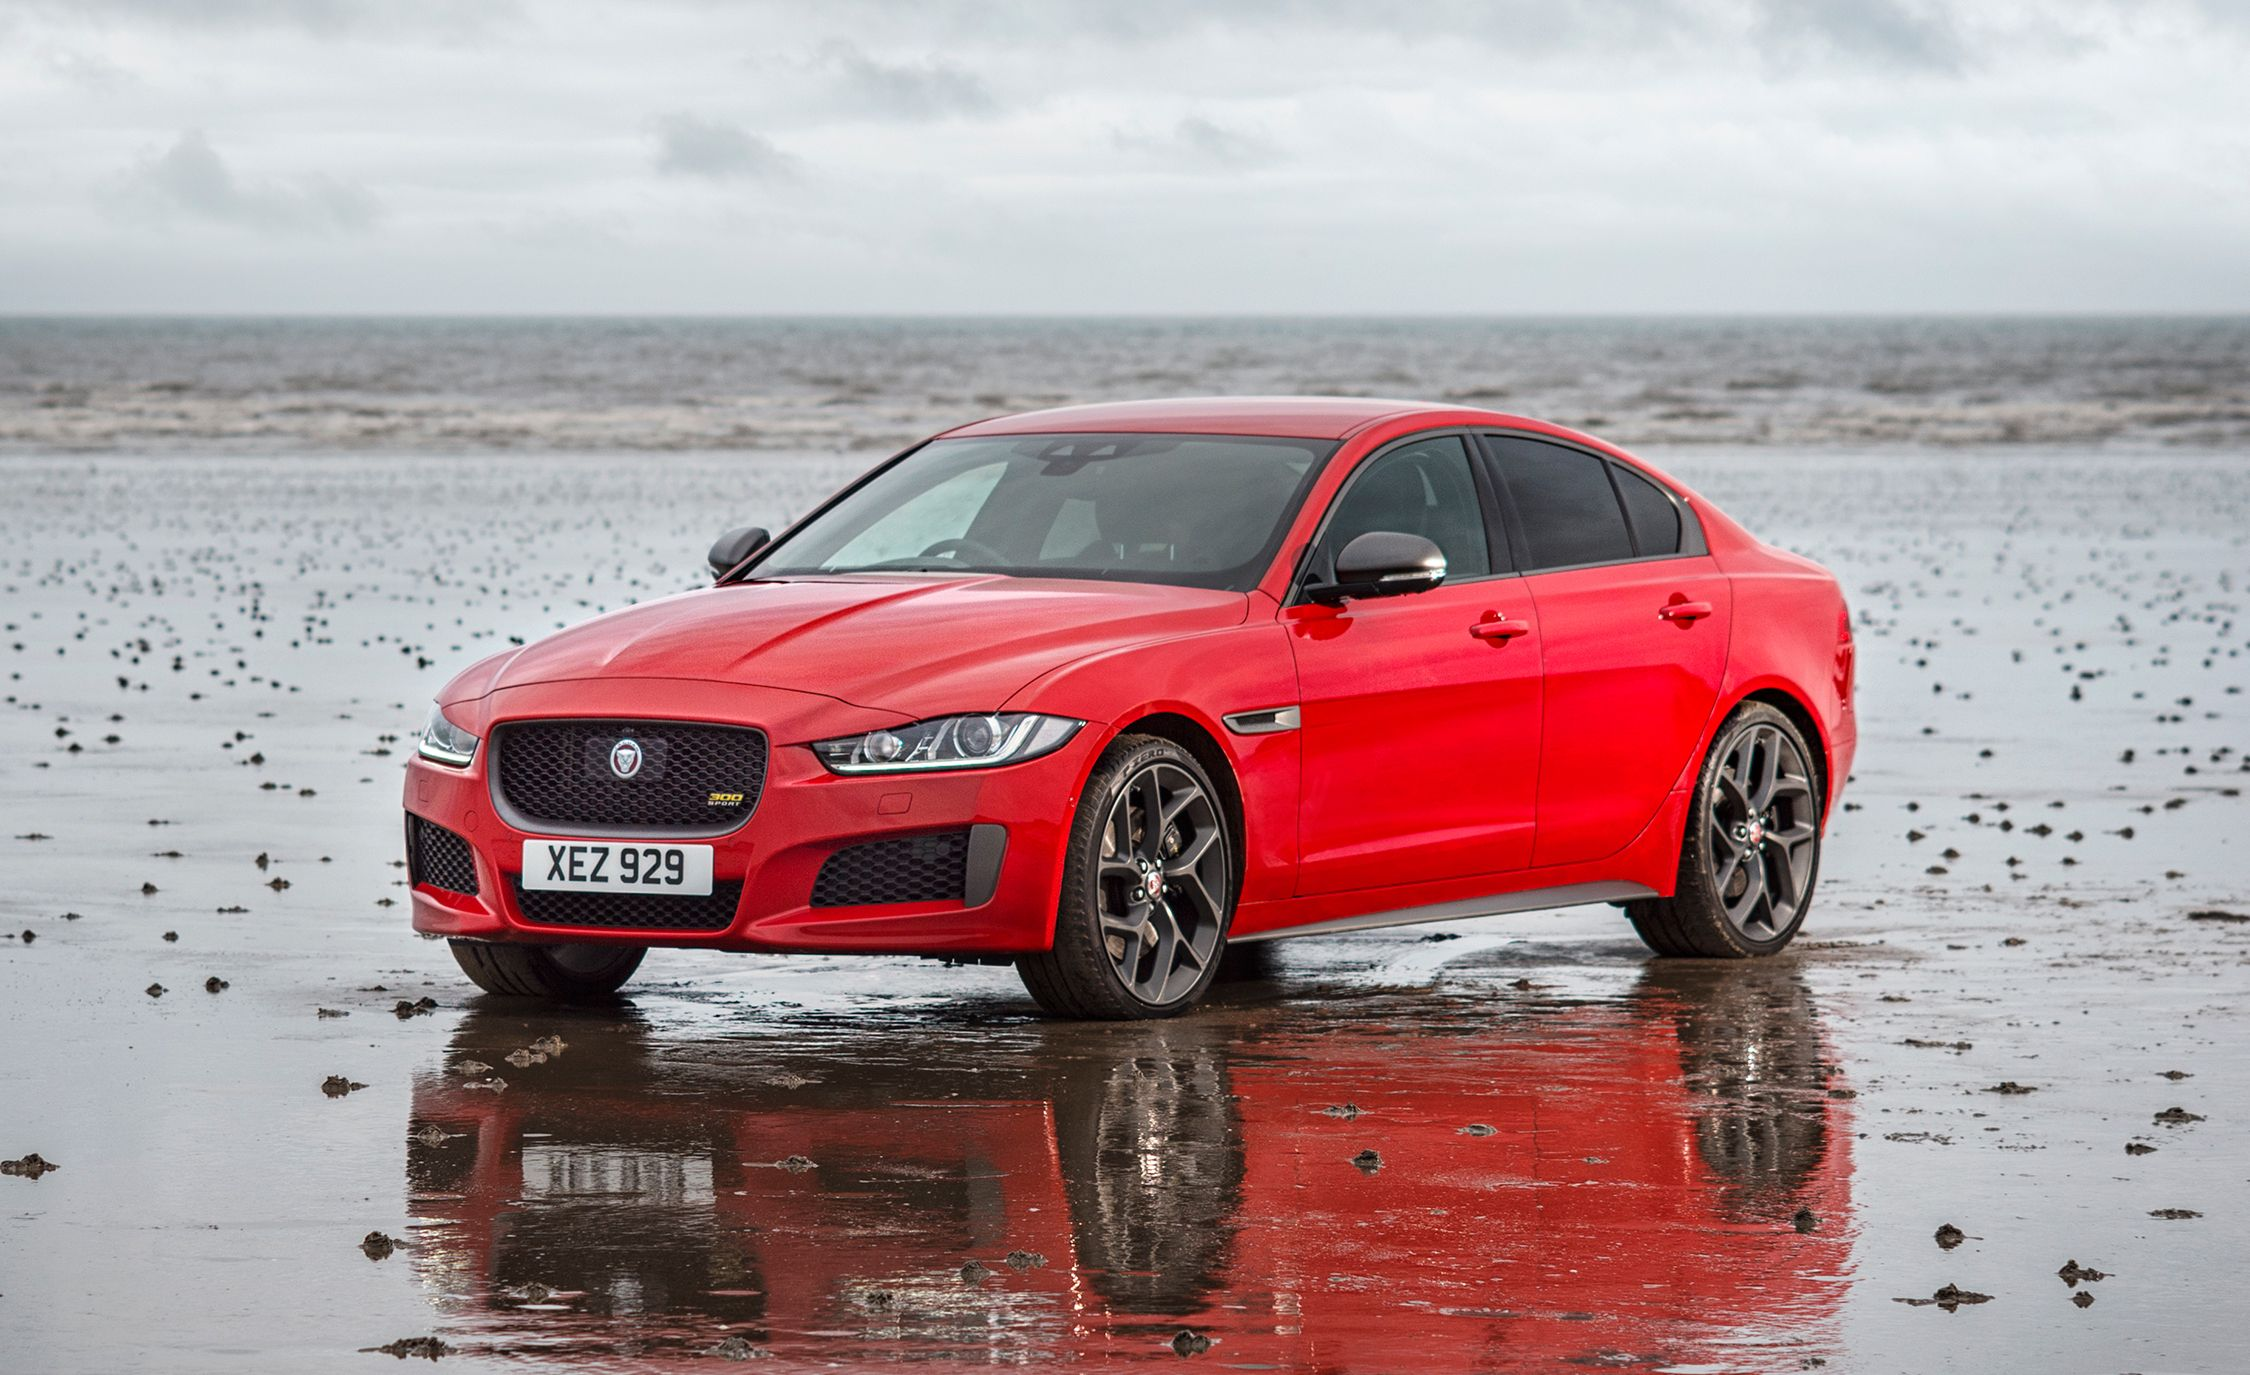 13. Jaguar XE Jaguar's XE is the sole Brit in the entry-luxury class, and its distinctly English character is perhaps its strongest selling point. The top-level version's supercharged V-6 is quick and characterful, while the base four-cylinder is more muted in its moves; the XE also is one of the only compact sports sedans to offer a diesel engine option.